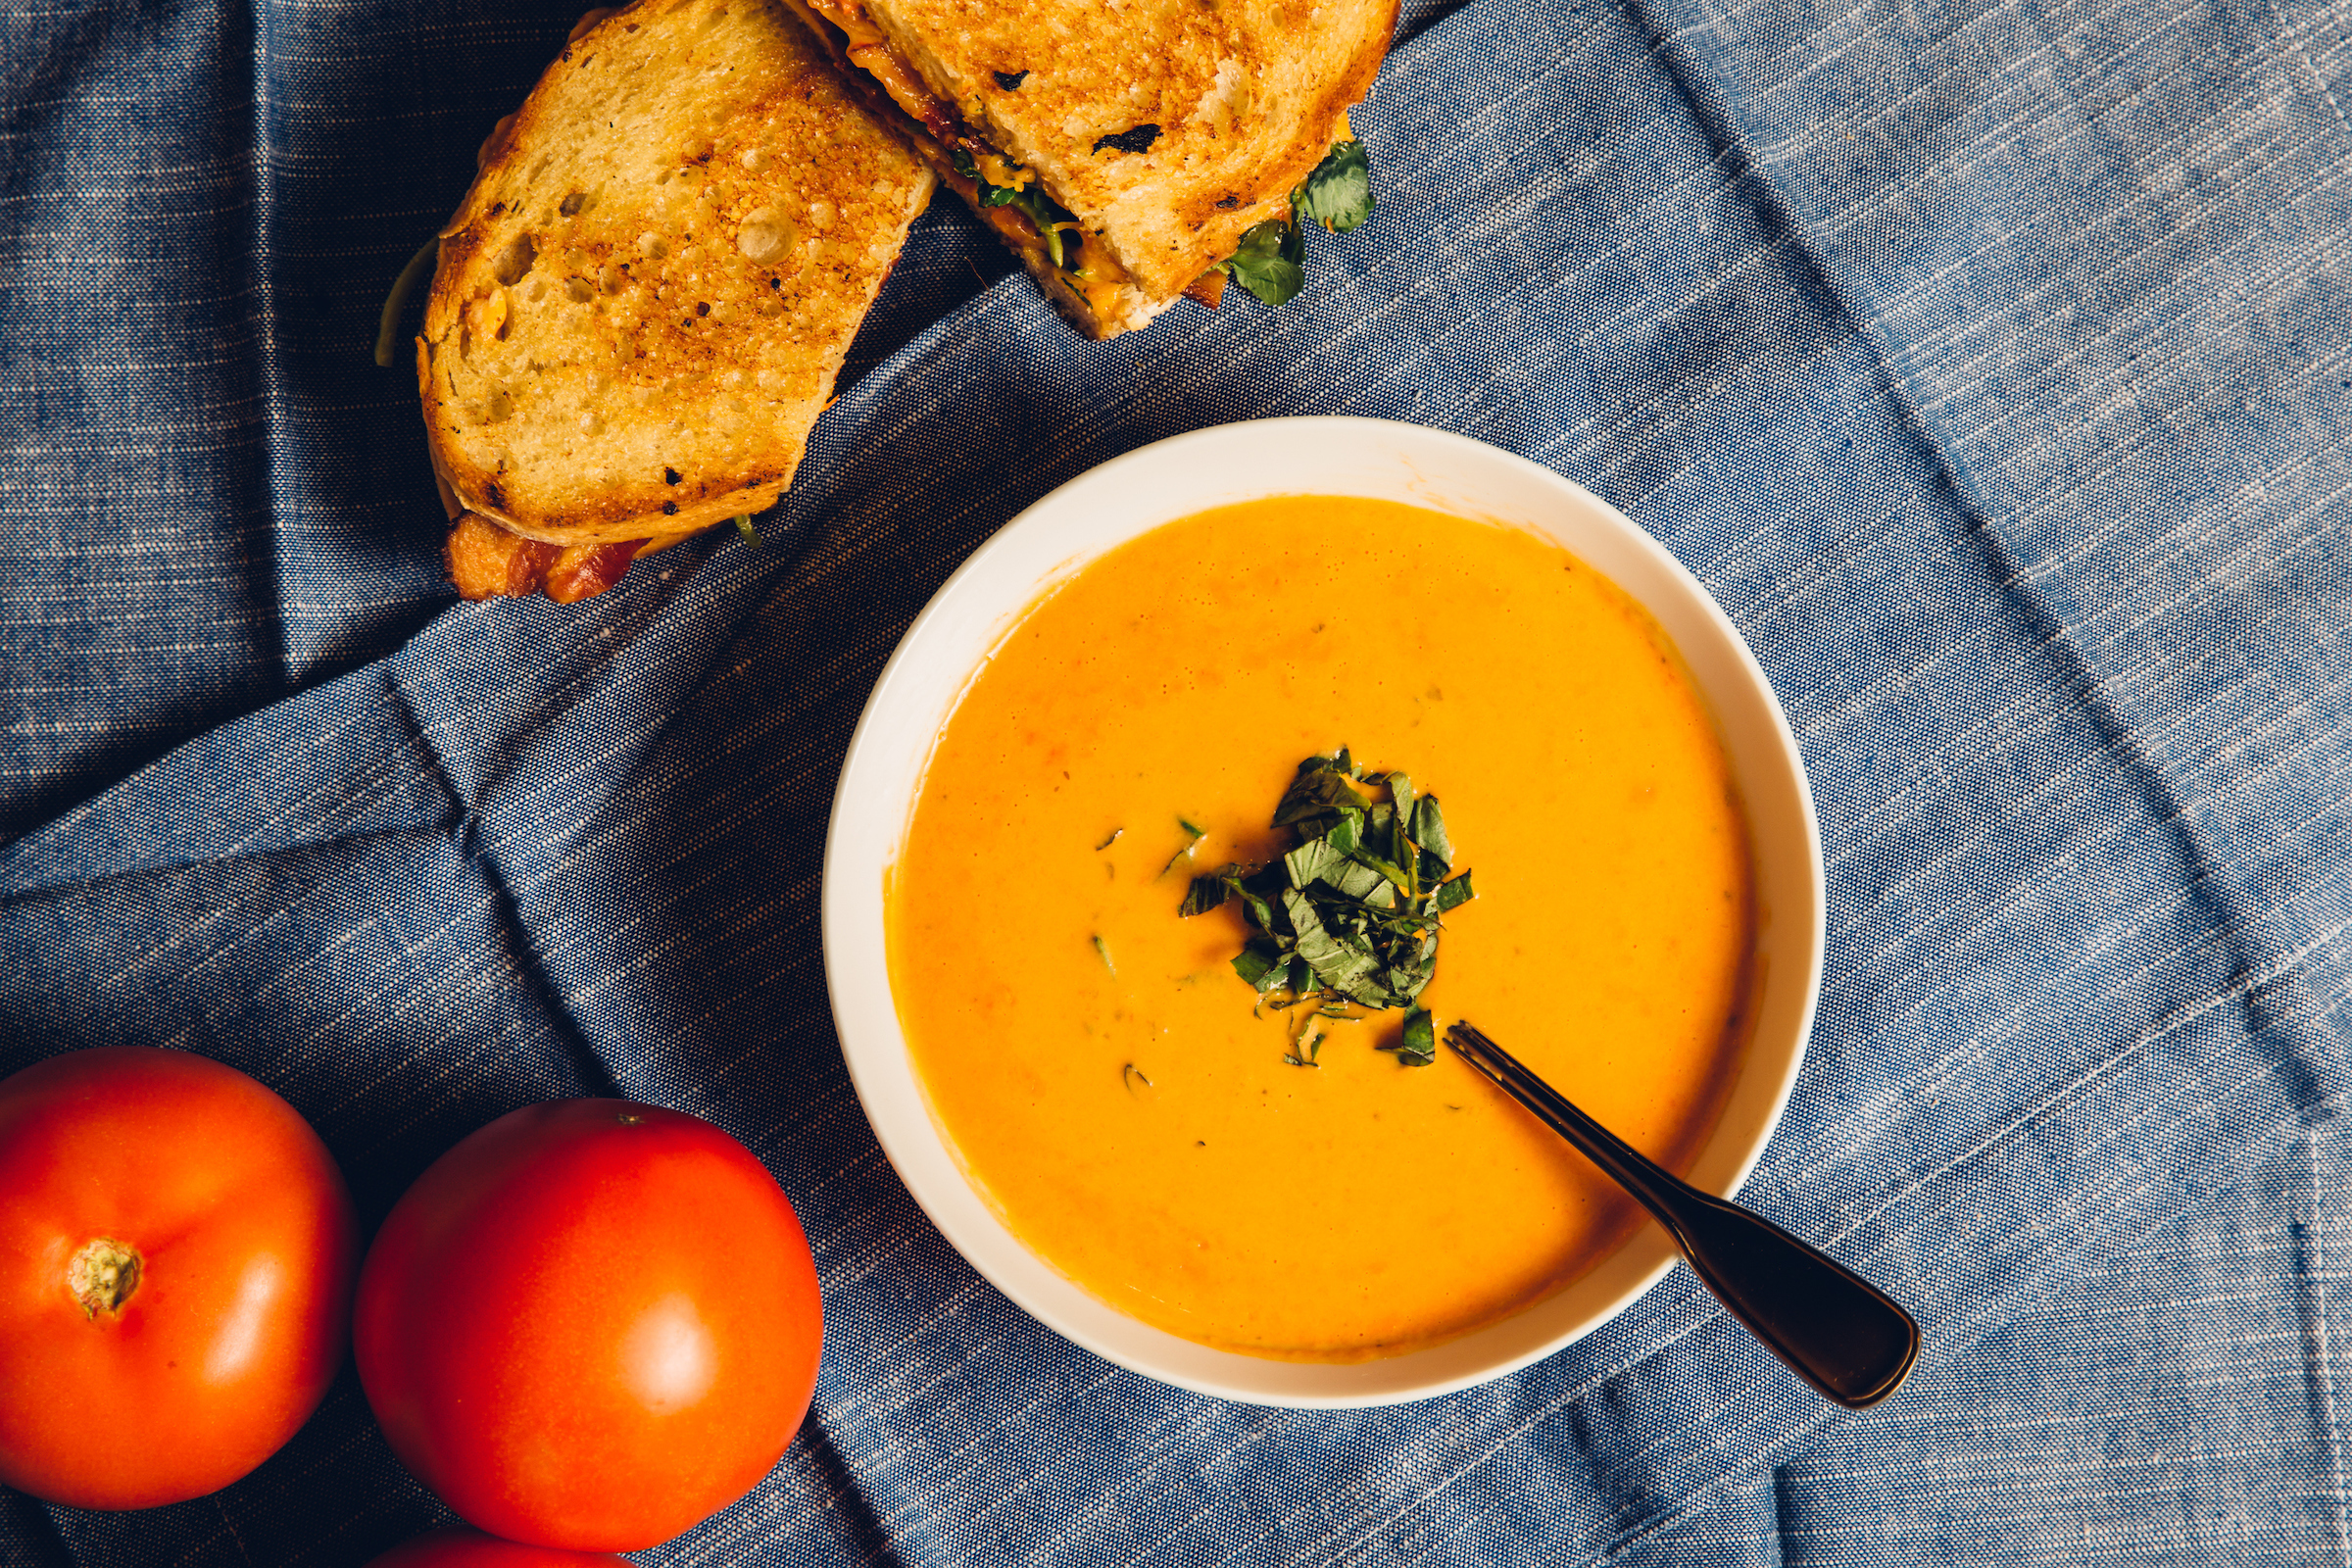 Image of soup, grilled cheese and tomatoes